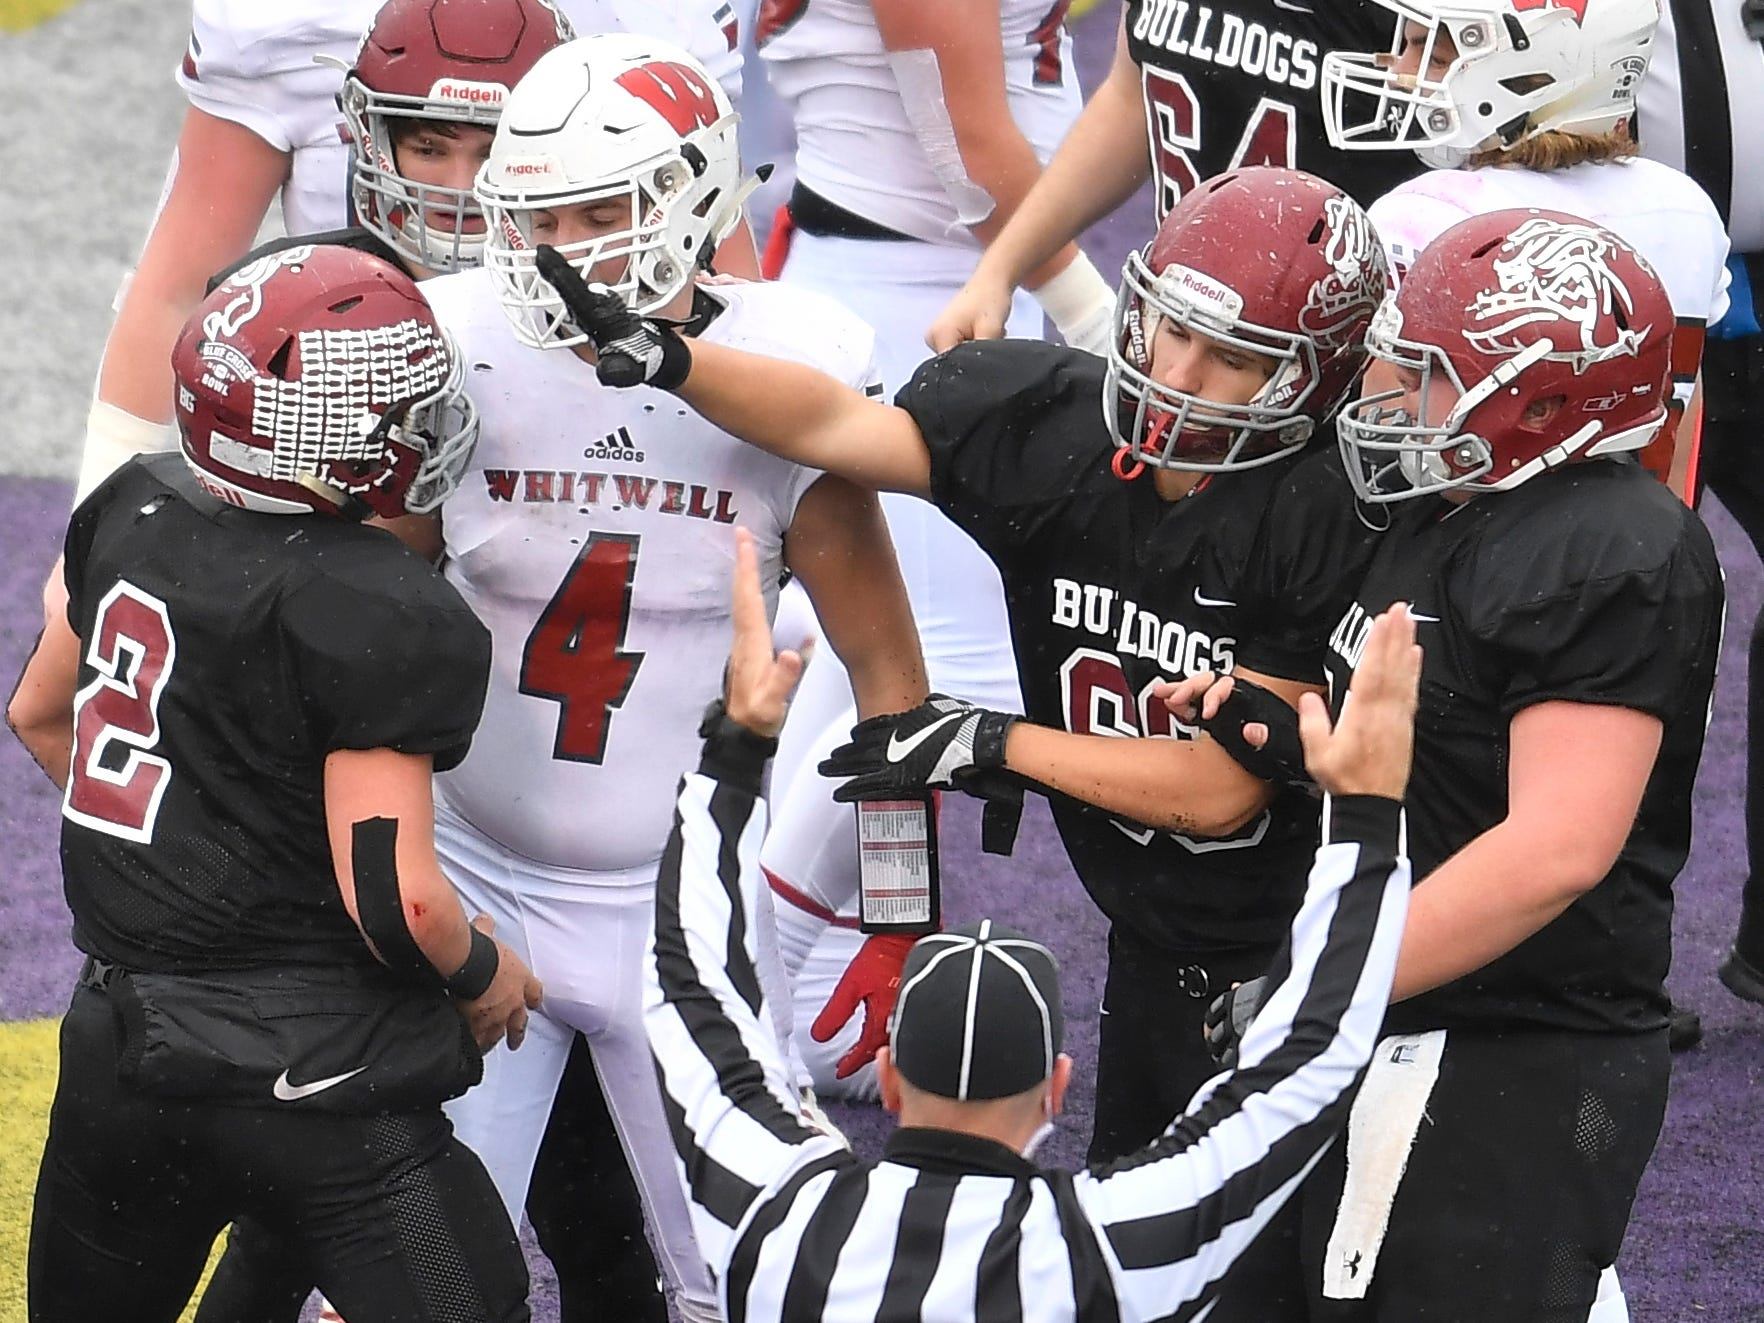 Cornersville players celebrate their touchdown in the first quarter at the Class I-A BlueCross Bowl state championship at Tennessee Tech's Tucker Stadium in Cookeville, Tenn., on Saturday, Dec. 1, 2018.